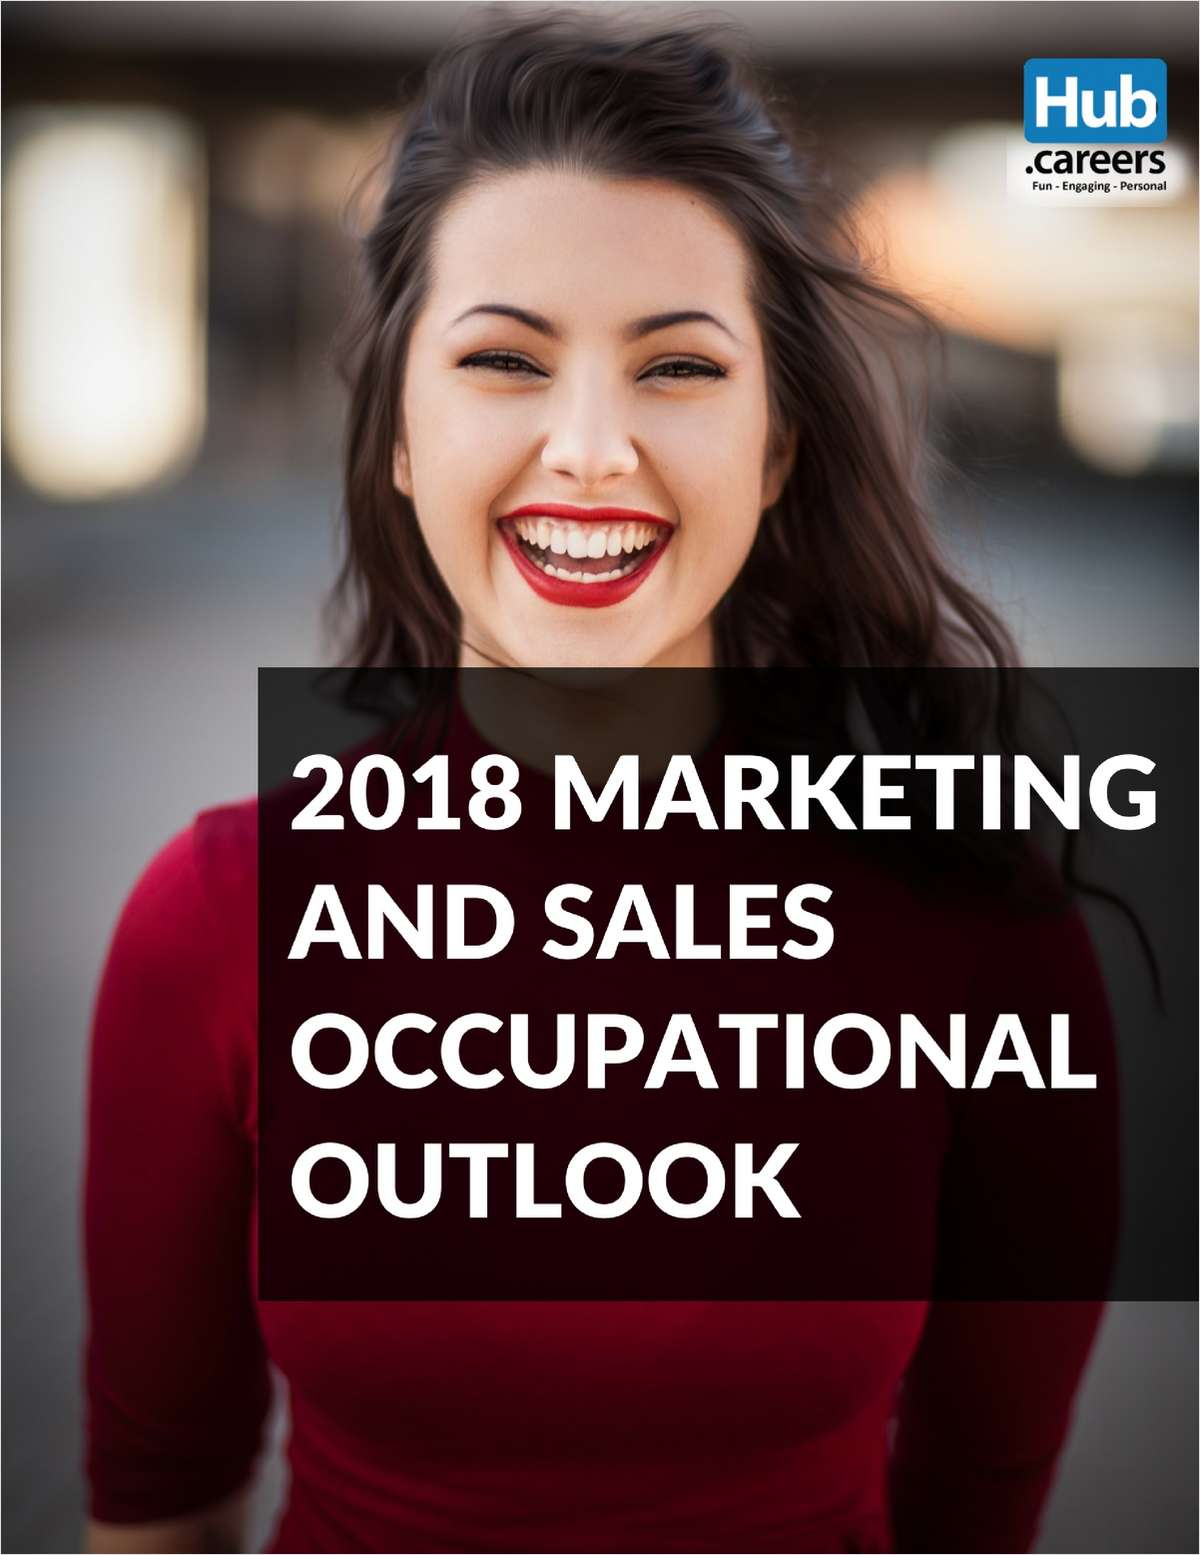 2018 Marketing and Sales Occupational Outlook